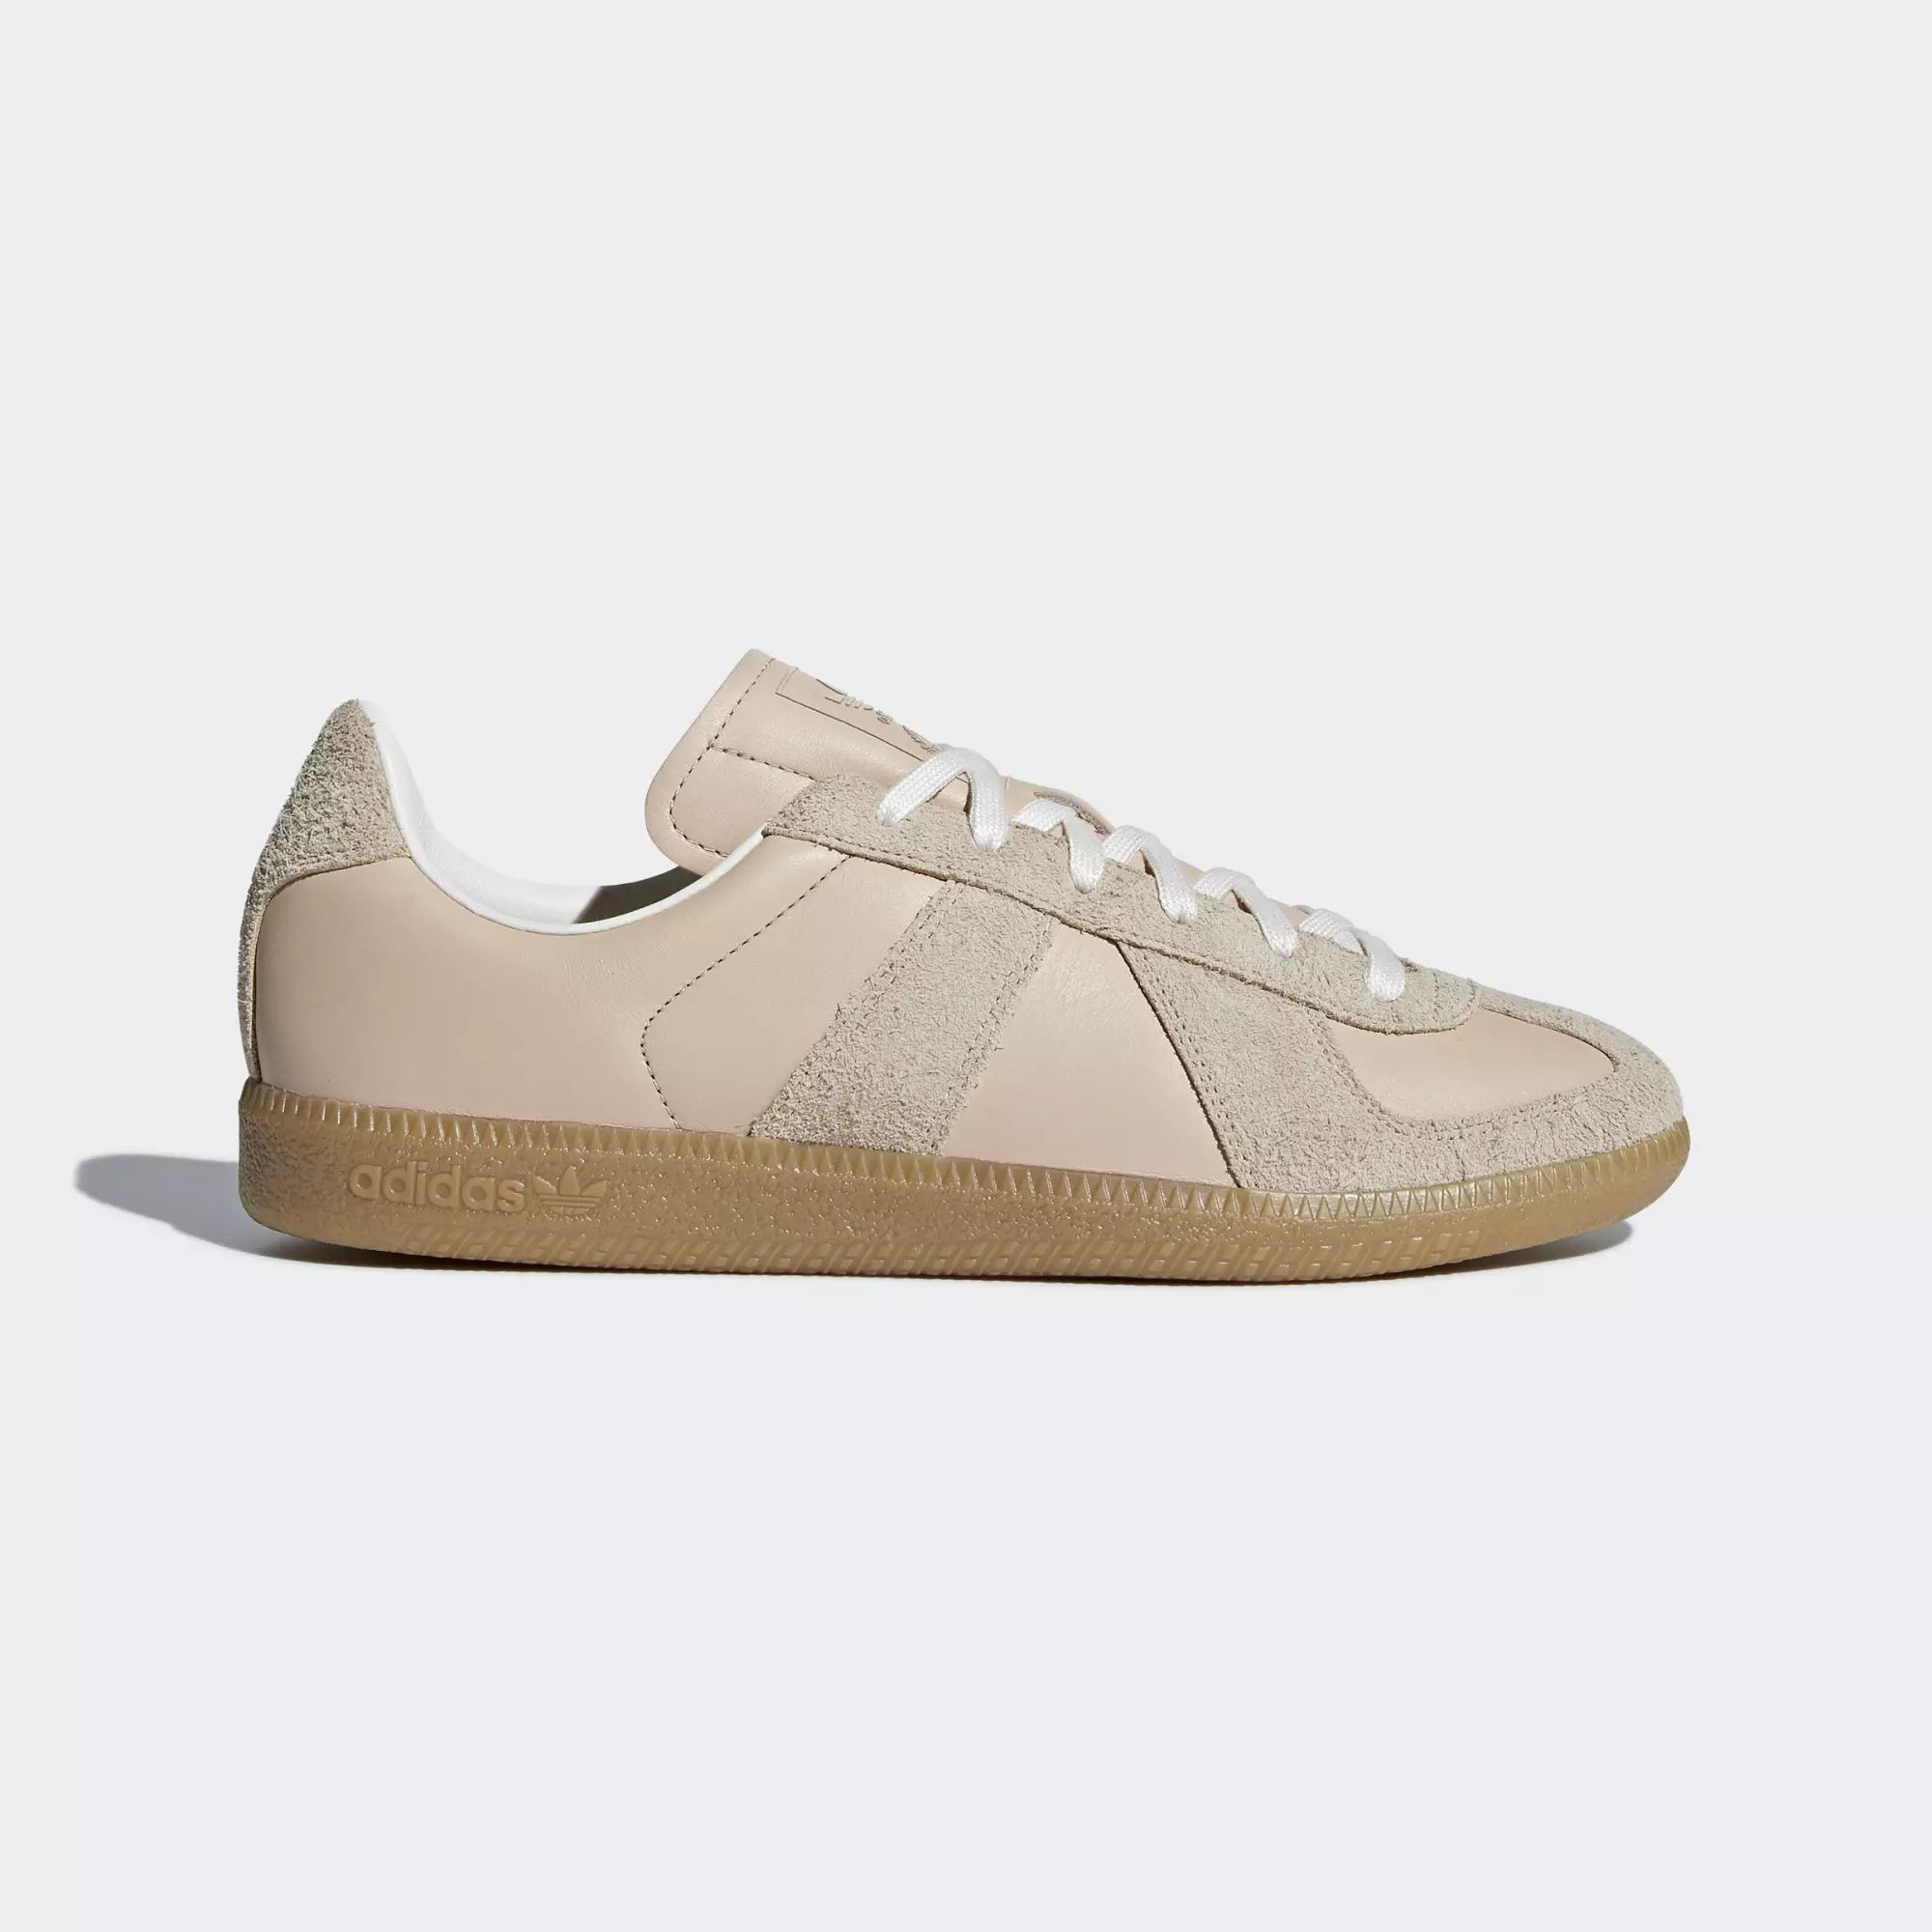 Adidas BW Army Shoes - St Pale Nude / St Pale Nude / Chalk White